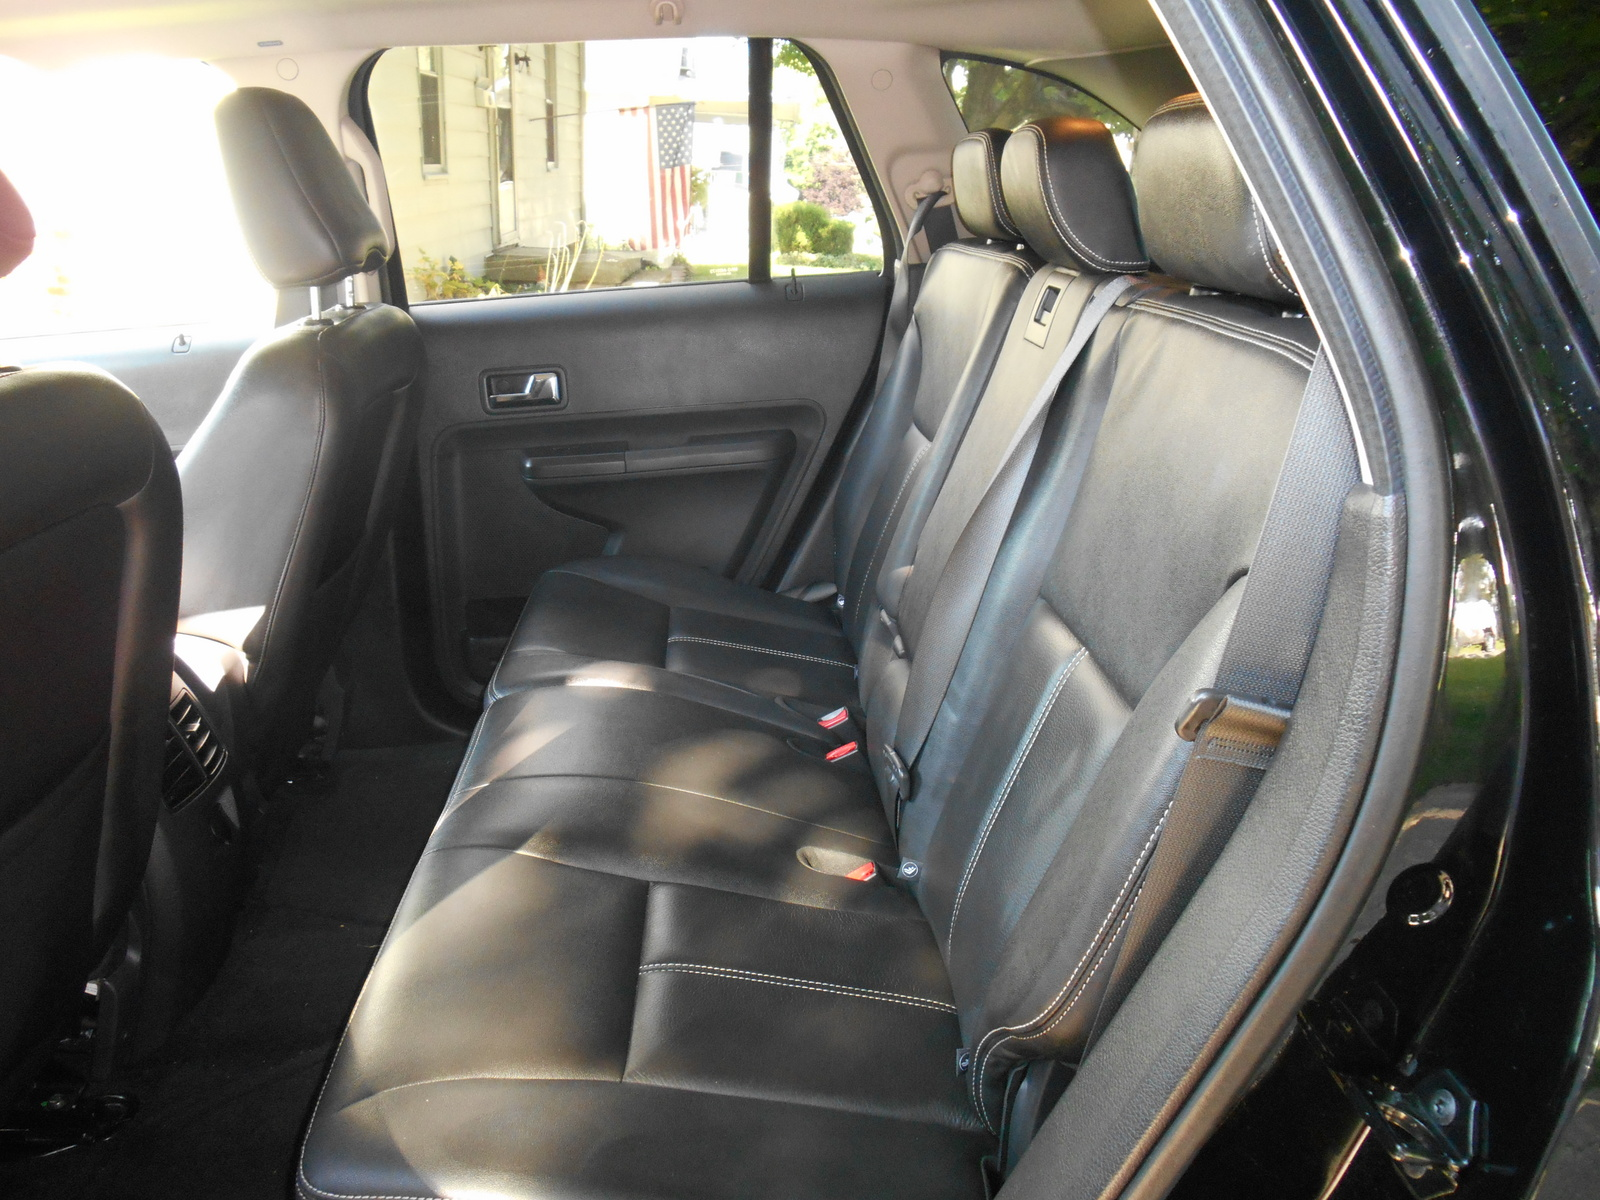 2007 Ford Edge Sel >> 2007 Ford Edge - Interior Pictures - CarGurus